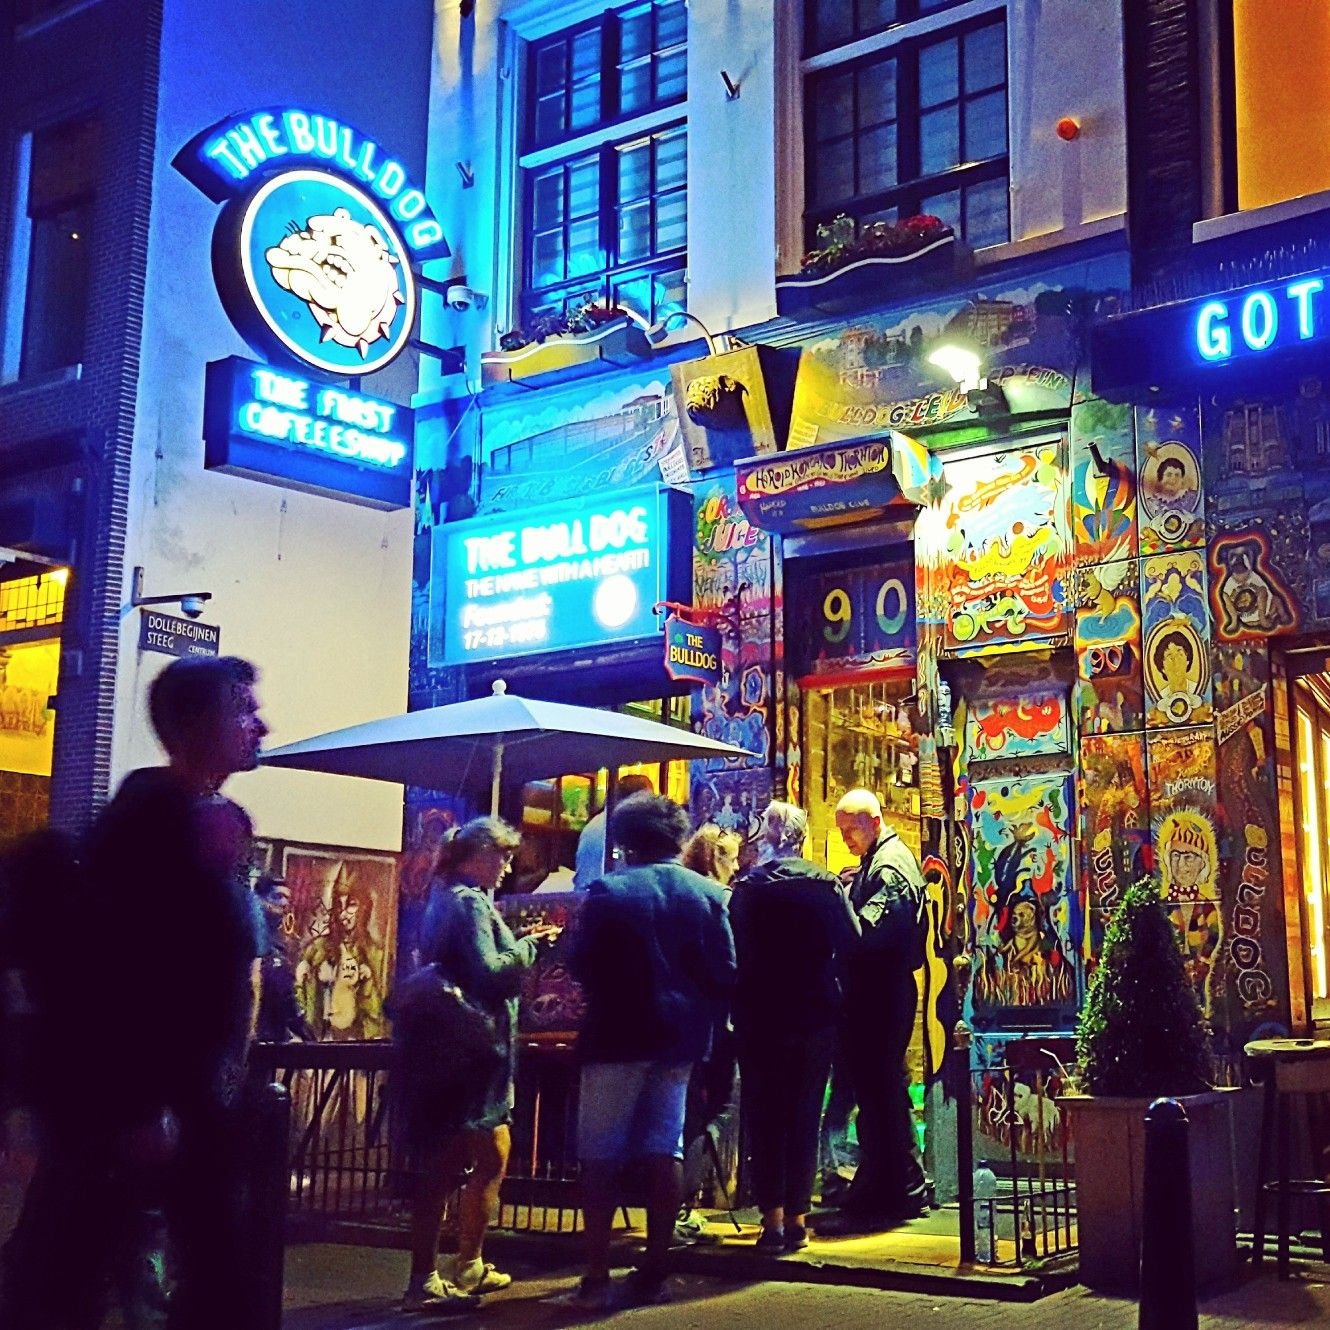 The Bulldog Coffeeshop In The Red Light District Of Amsterdam